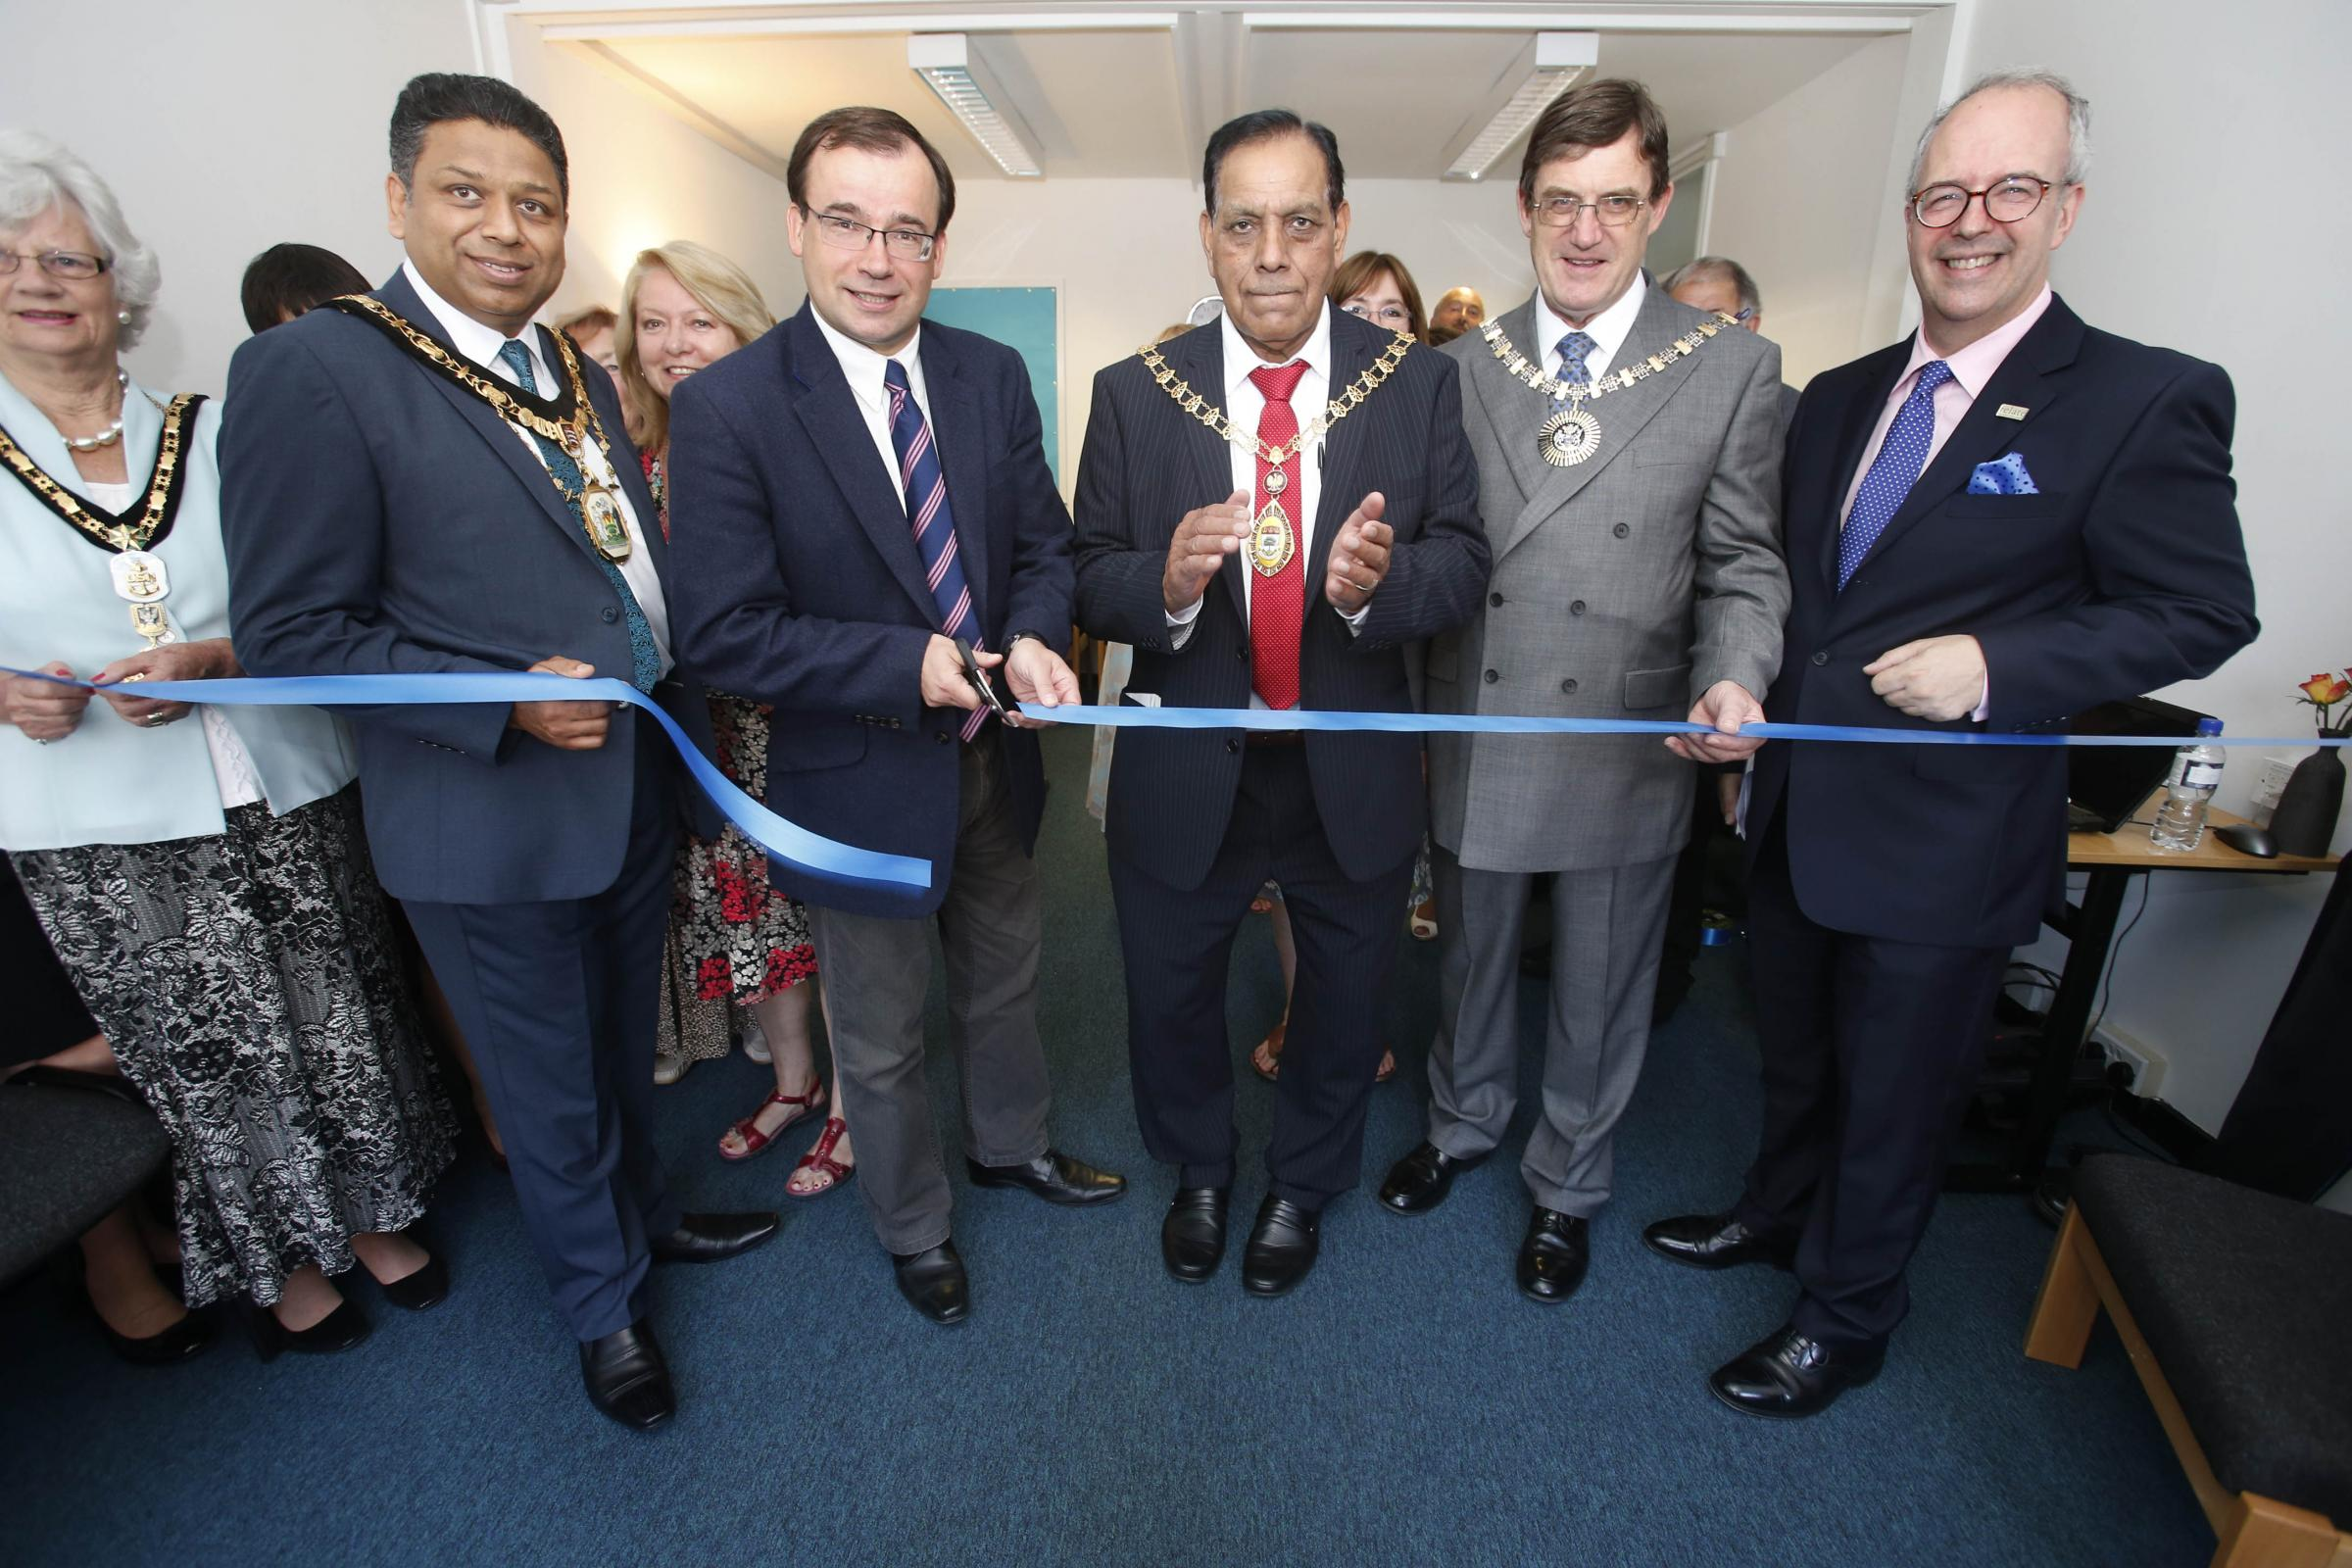 Counselling organisation moves into new HQ